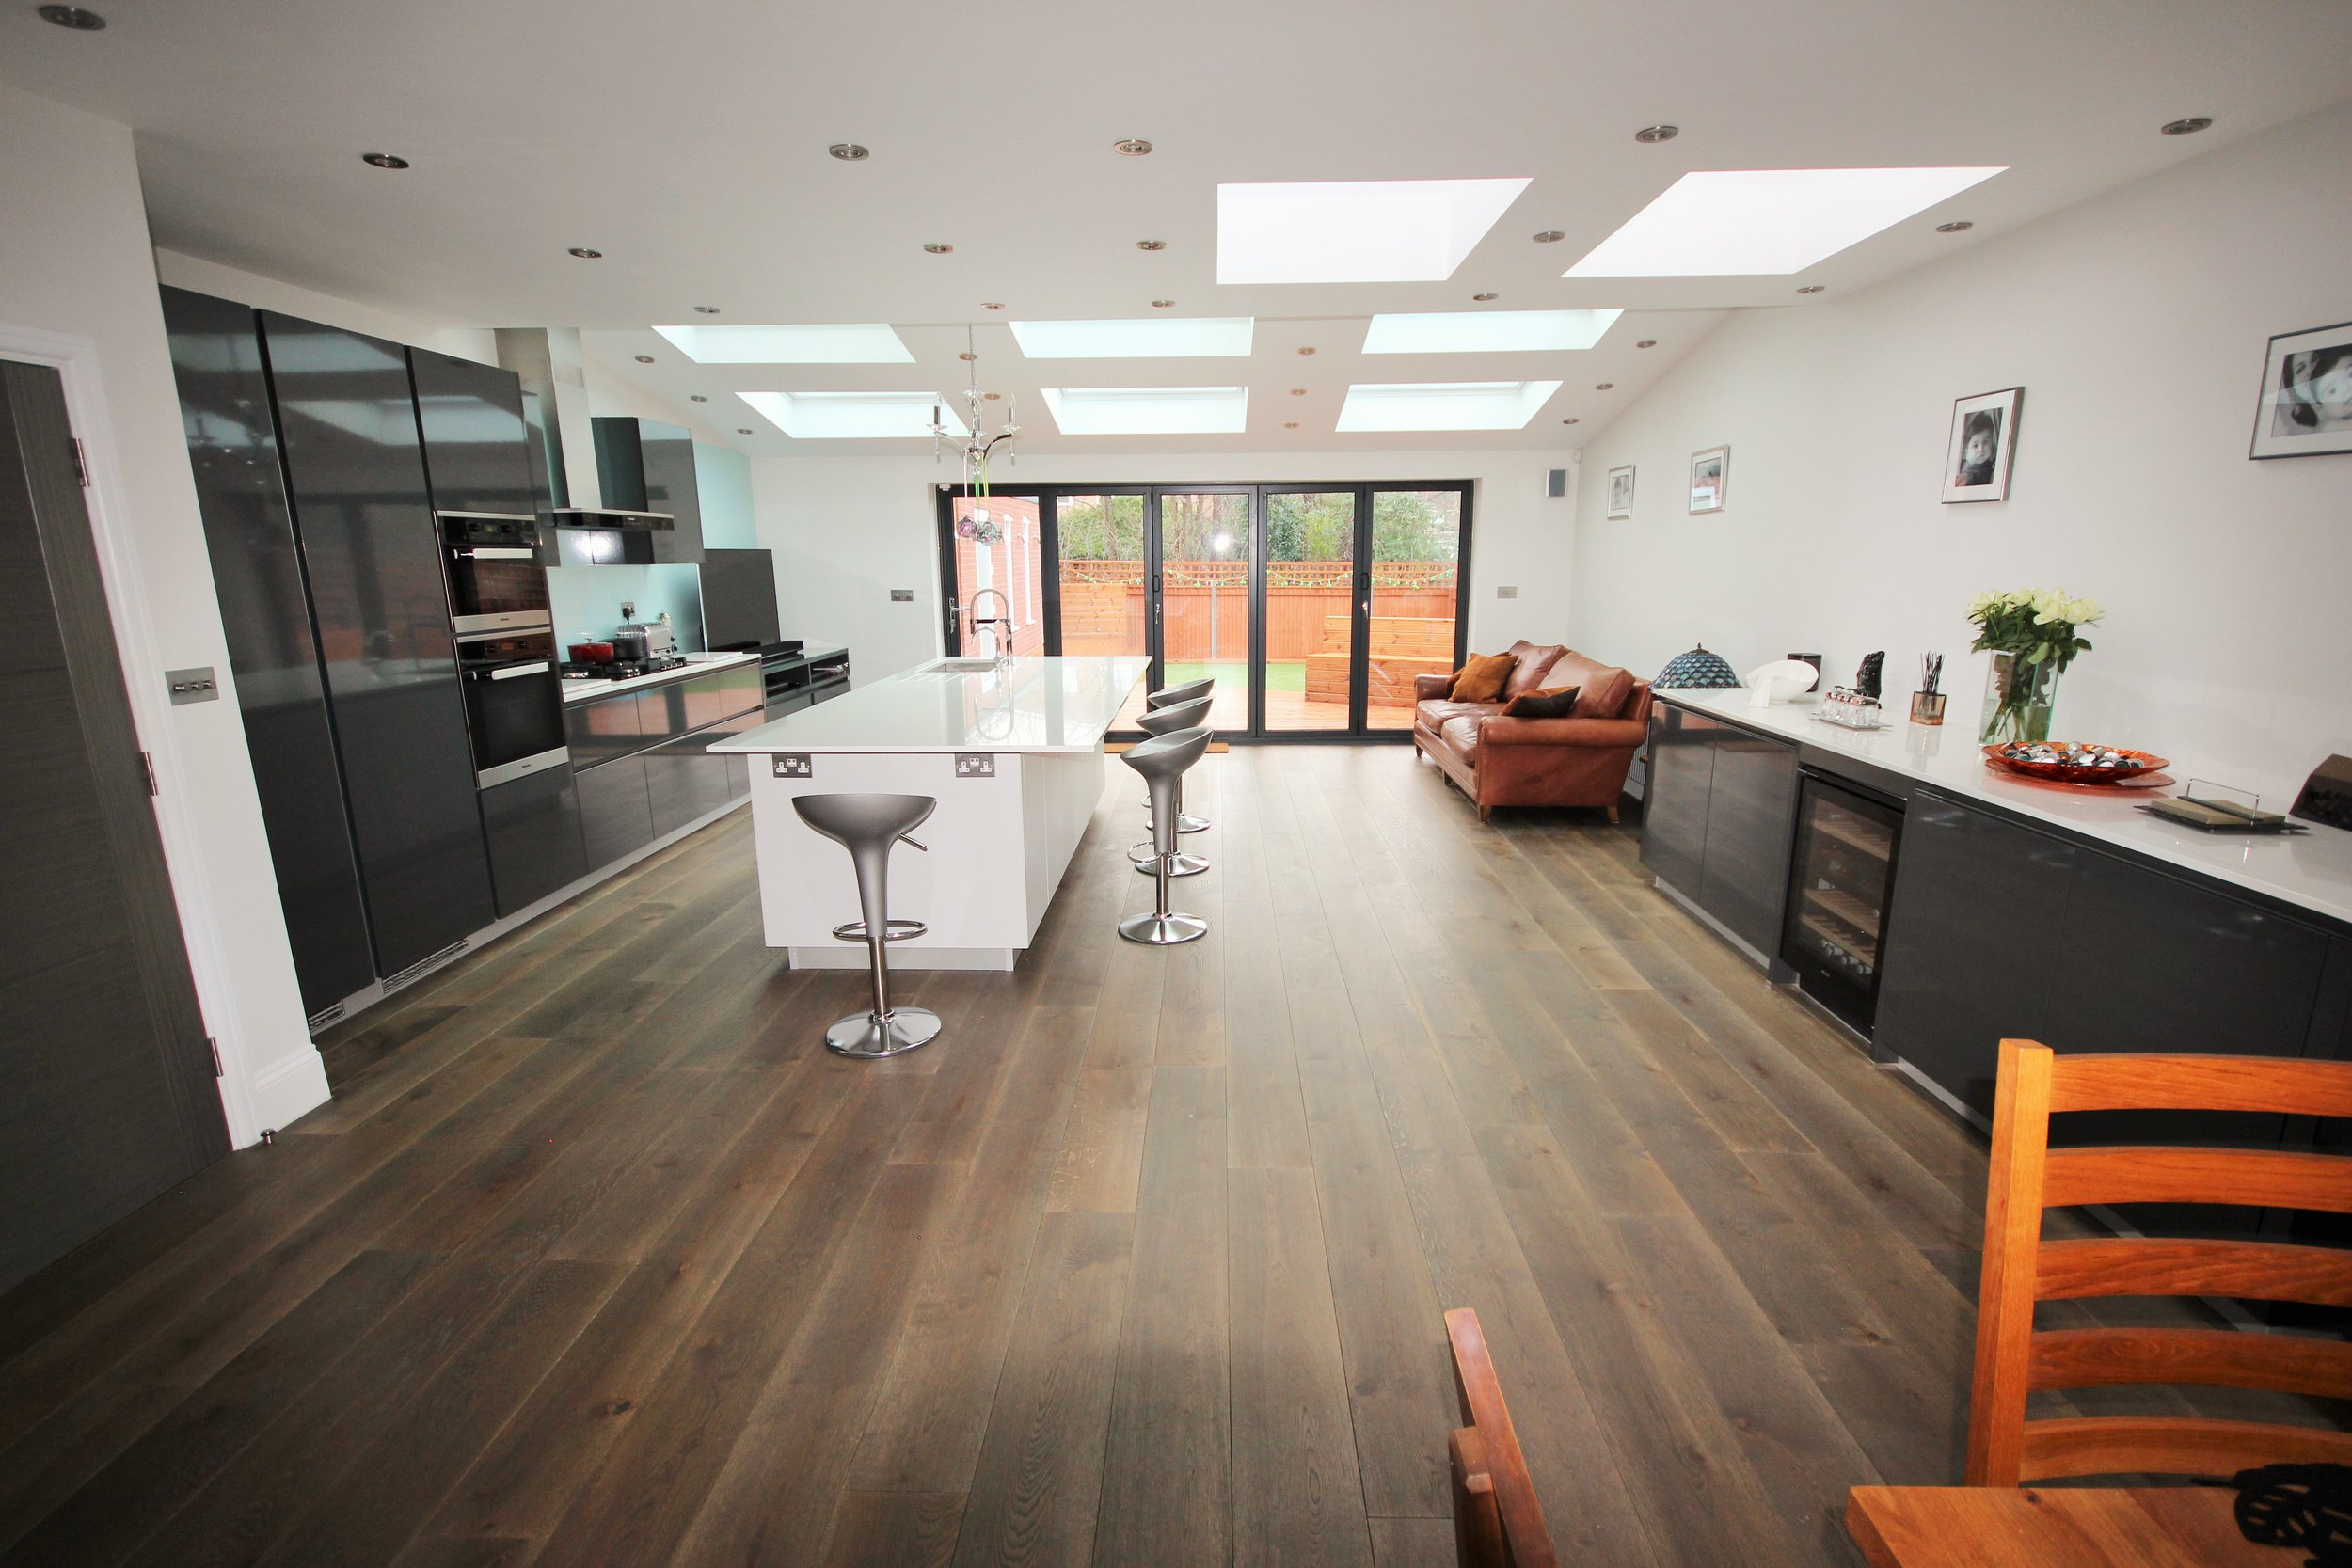 - This dated 3 bedroom house has been turned into a Luxury 4 Bedroom Family home … Another iDream Team Amazing Makeover.Double Storey side extension6m rear extensionFull width dormer loft conversionExisting house renovationPiped under floor heating on ground floorNew bespoke staircase from ground floor up